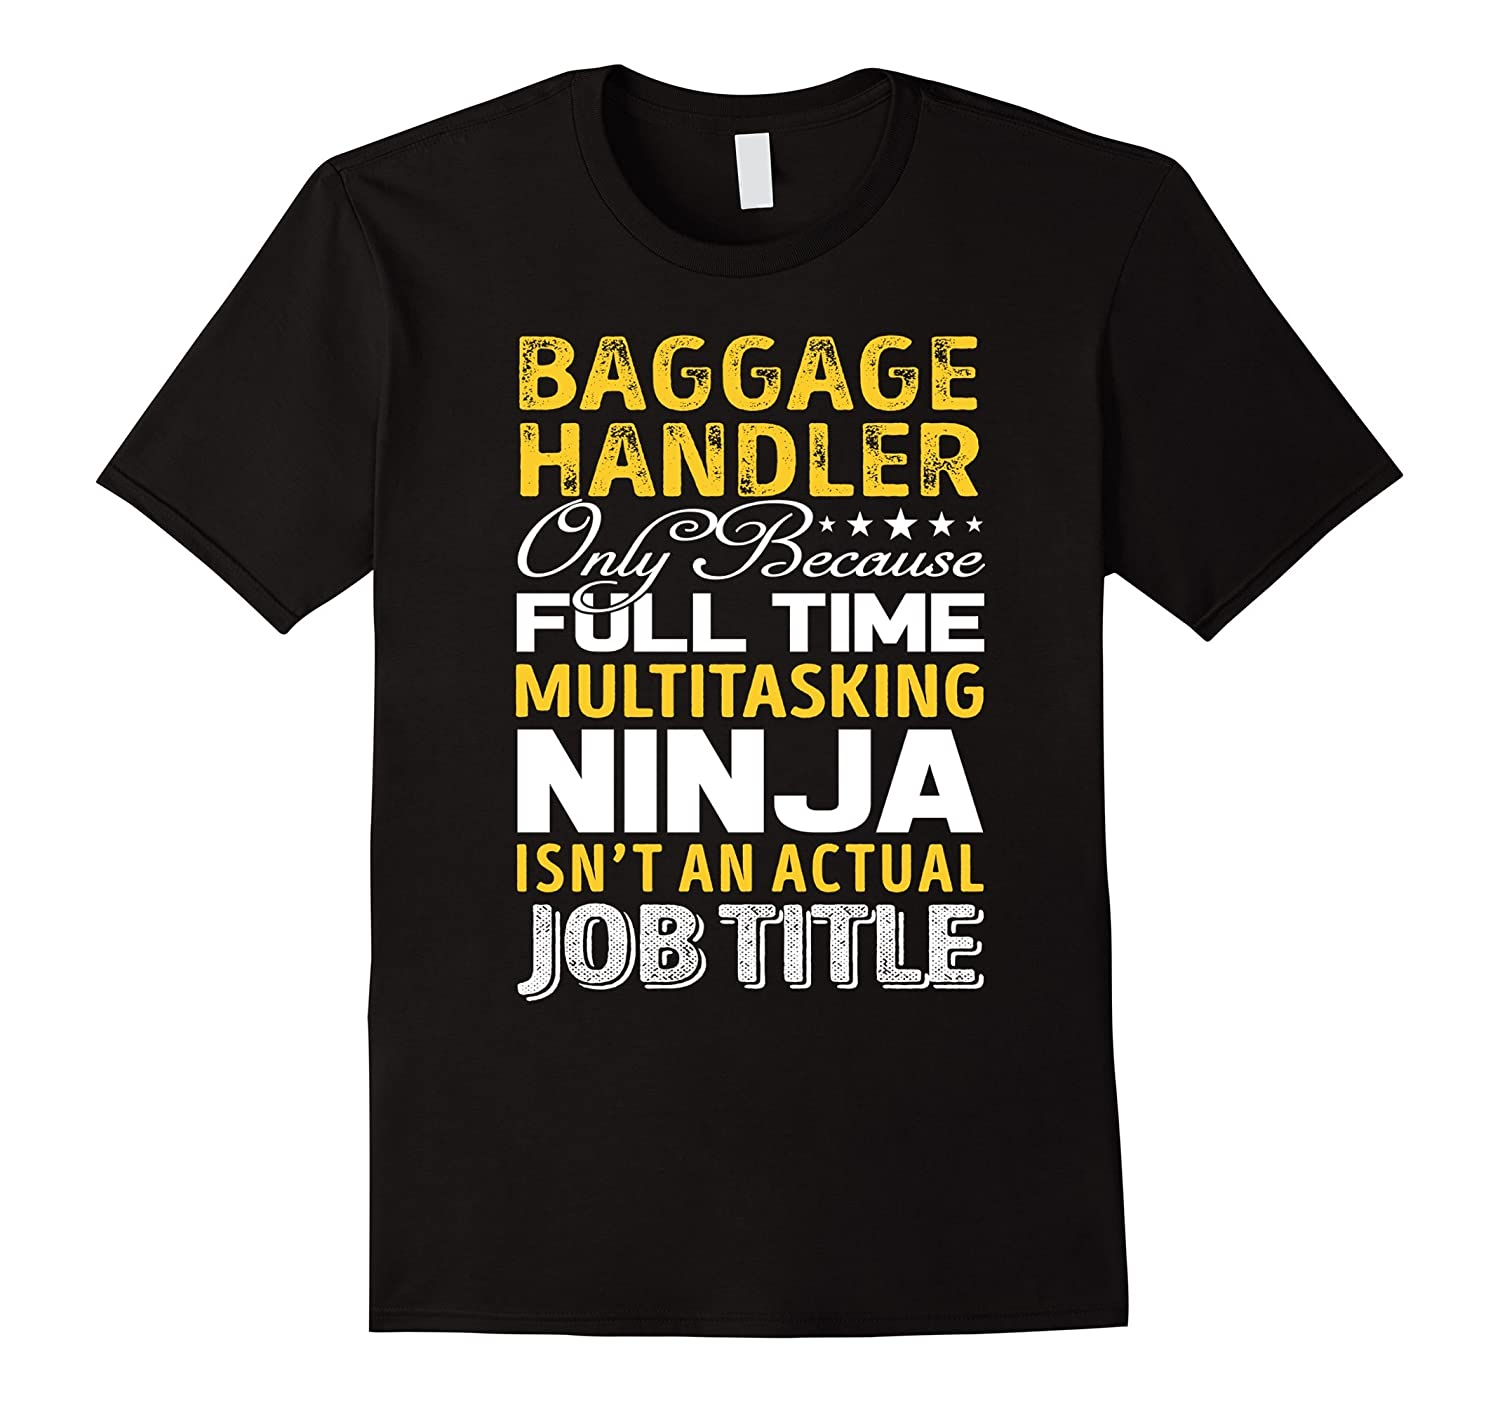 Baggage Handler Is Not An Actual Job Title TShirt-PL